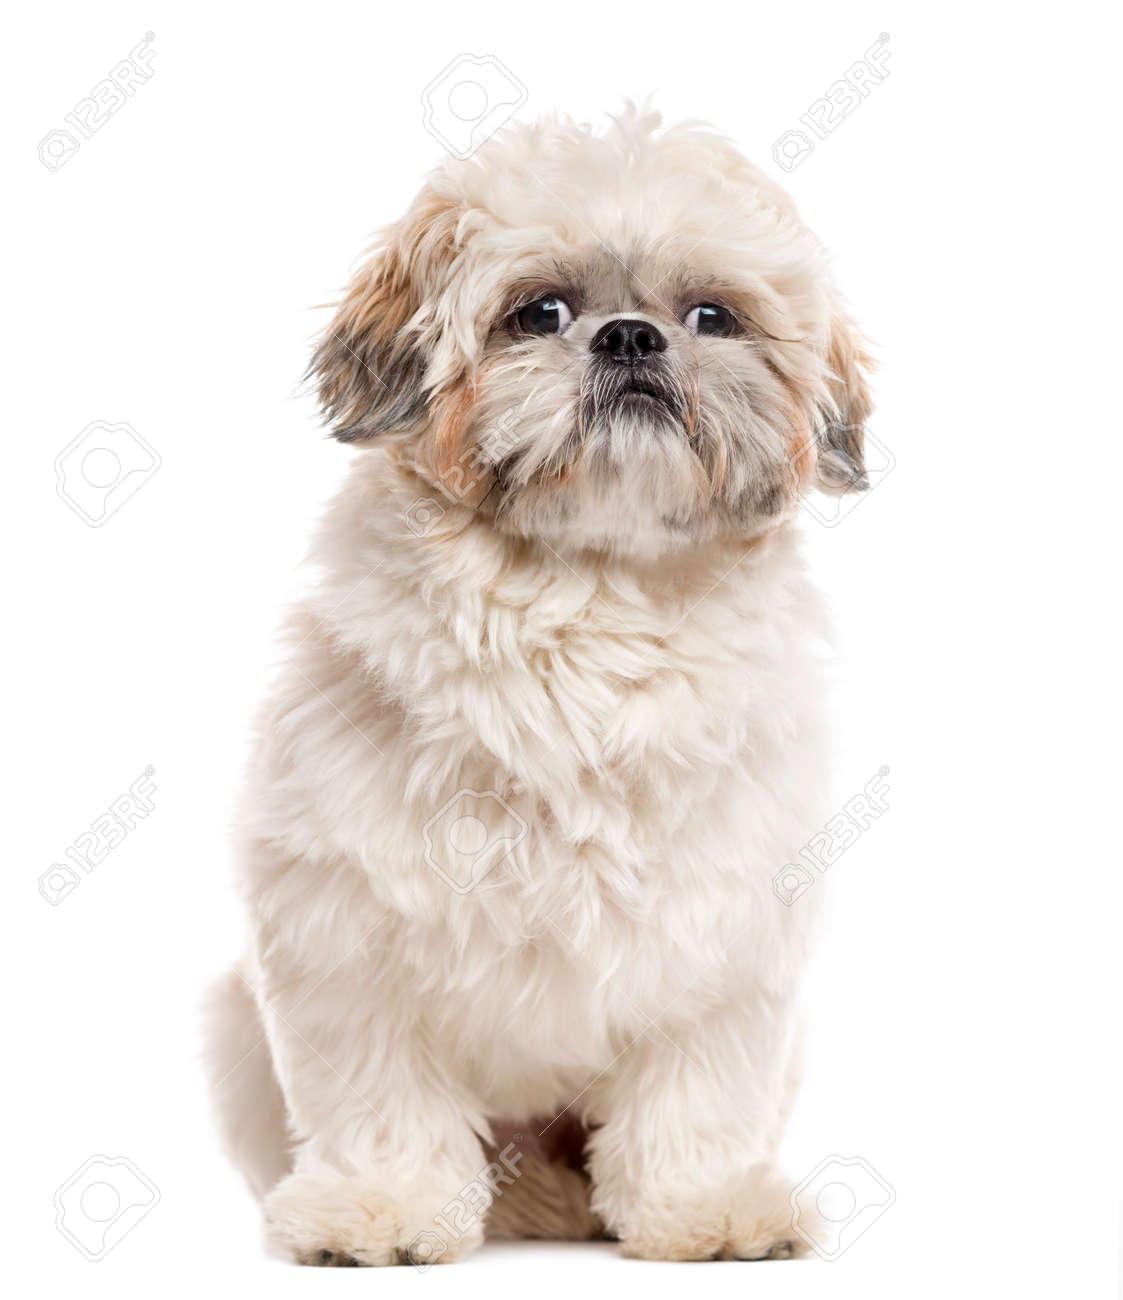 Shih Tzu Sitting And Looking Away Isolated On White 1 Year Stock